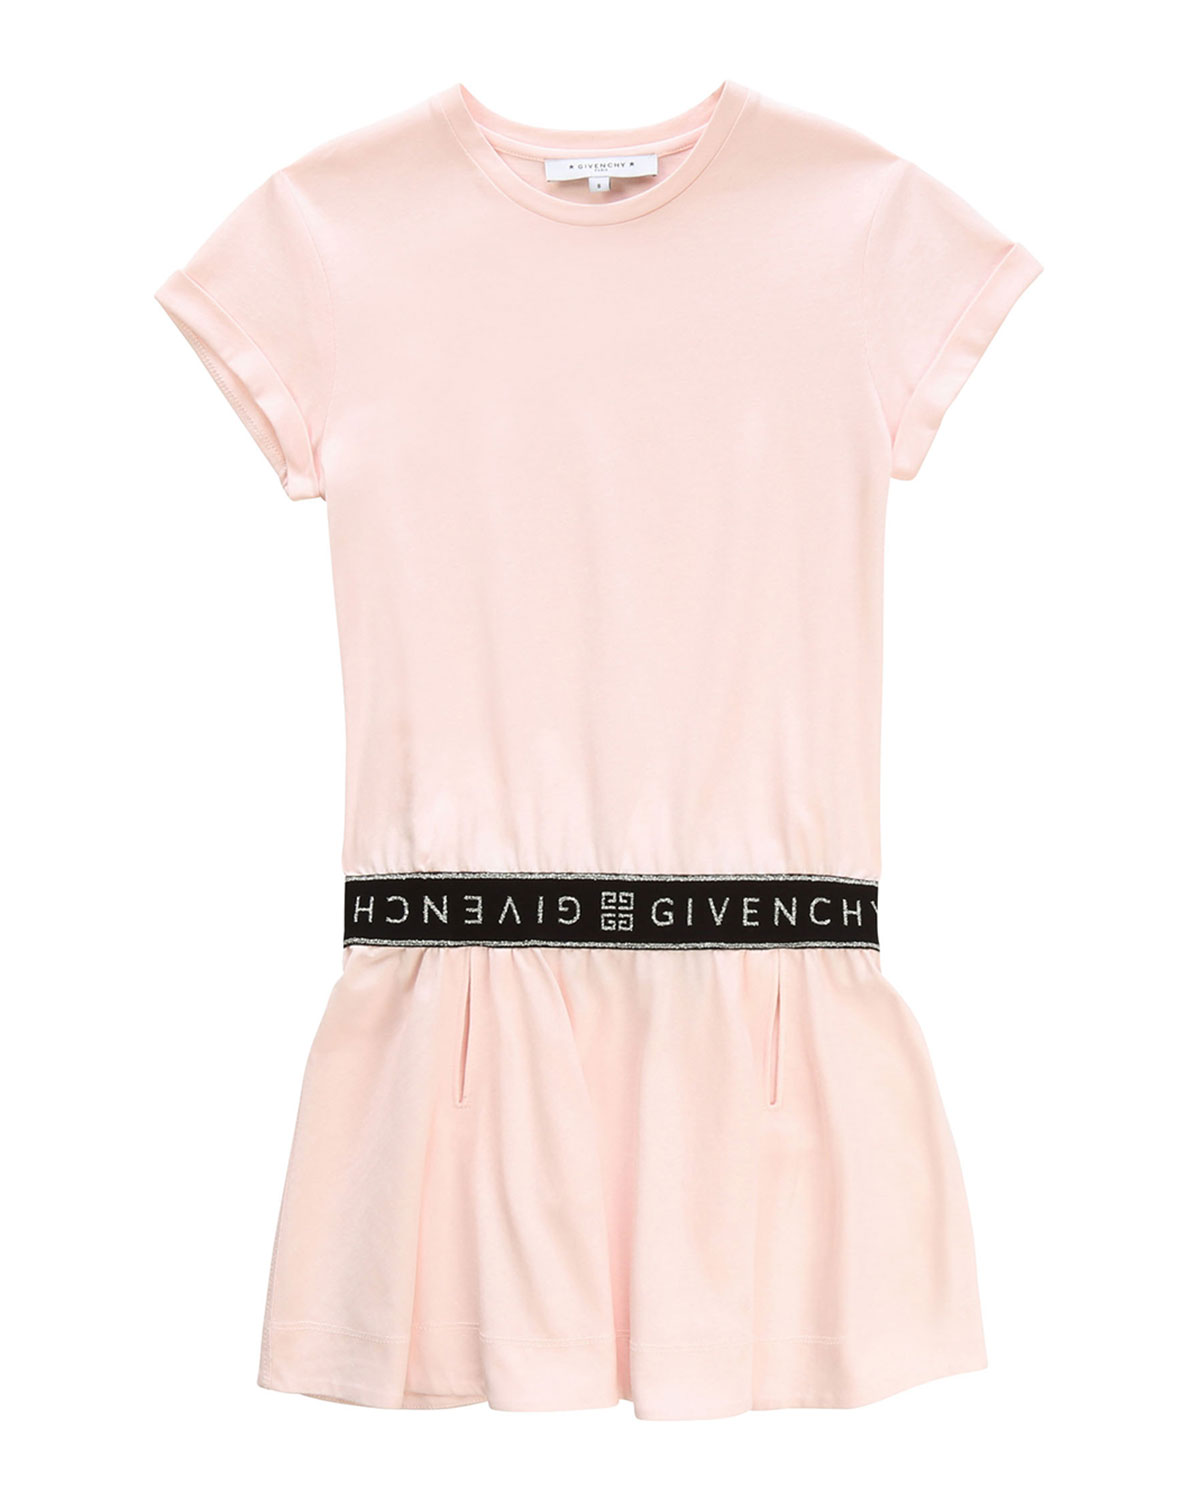 Givenchy SHORT-SLEEVE DRESS WITH LOGO DETAILS